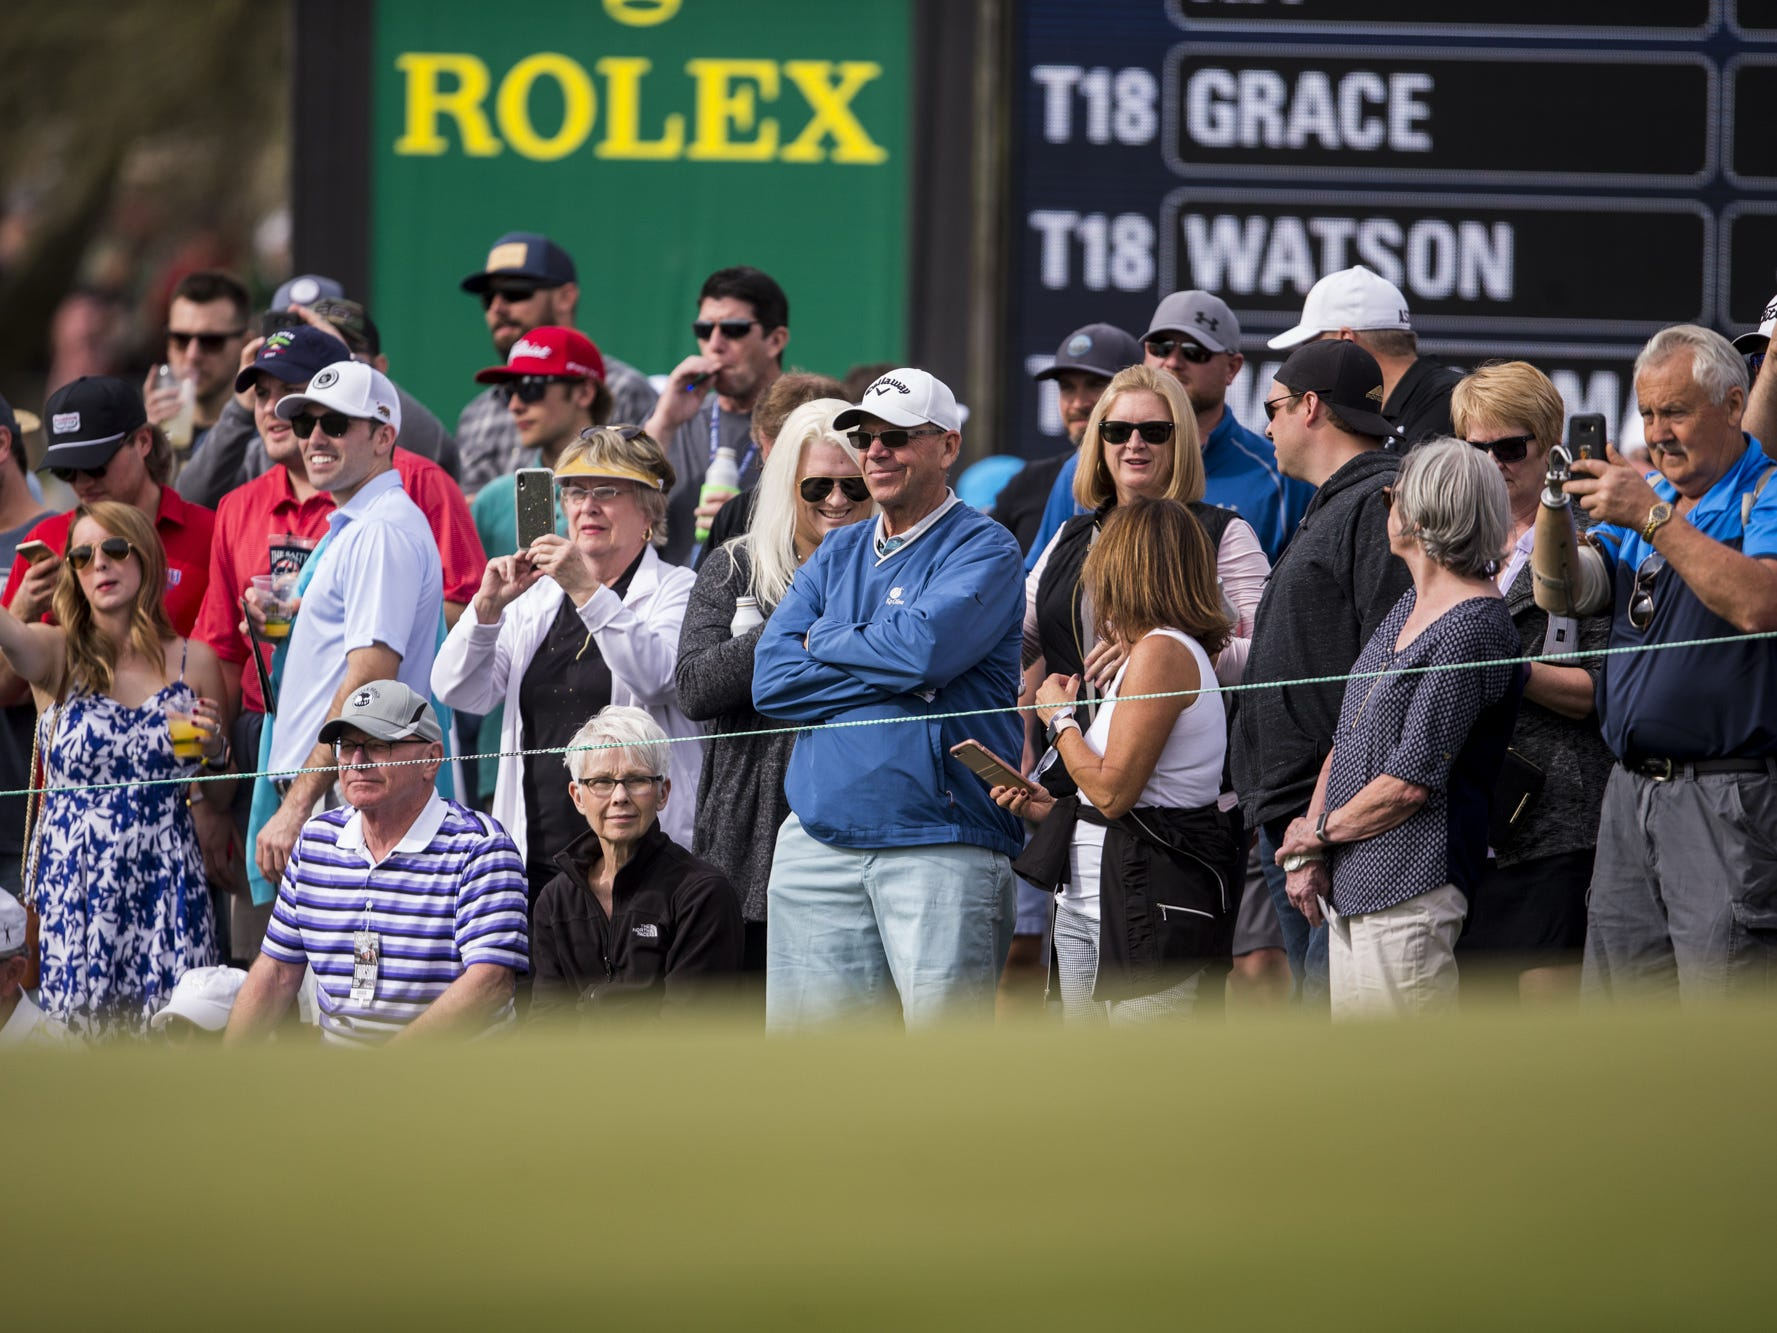 Fans watch at the 9th hole during the Waste Management Phoenix Open on Thursday, Jan. 31, 2019, at TPC Scottsdale in Scottsdale, Ariz.